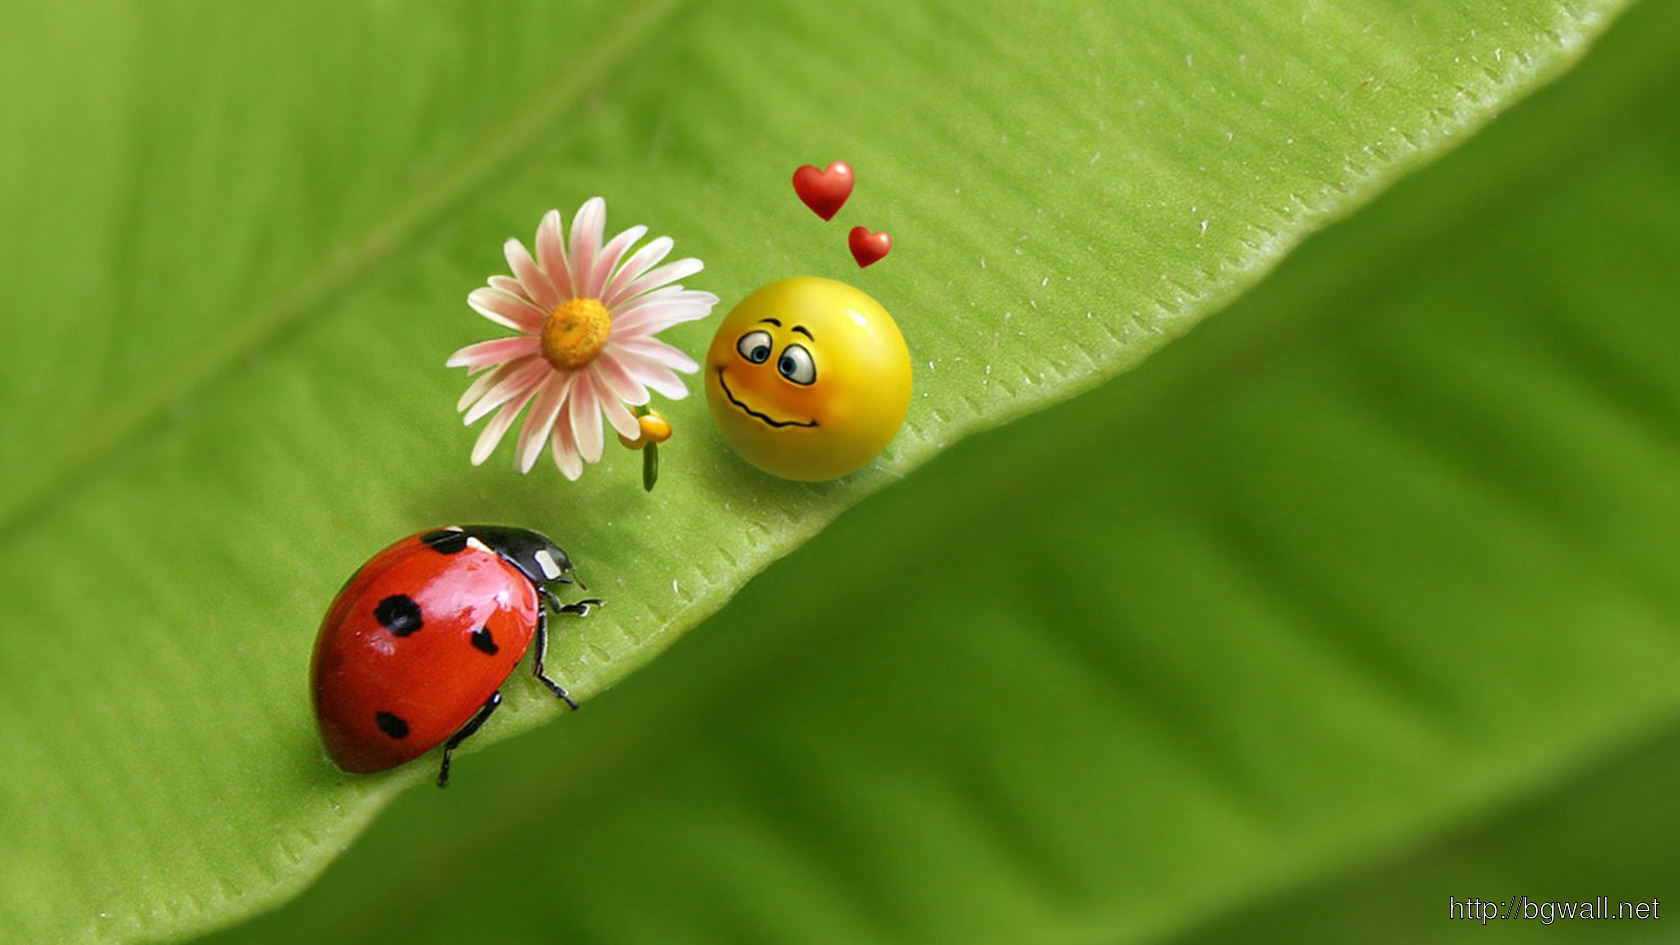 Download Ladybug And Smiley Face In Love Wallpaper Full Size